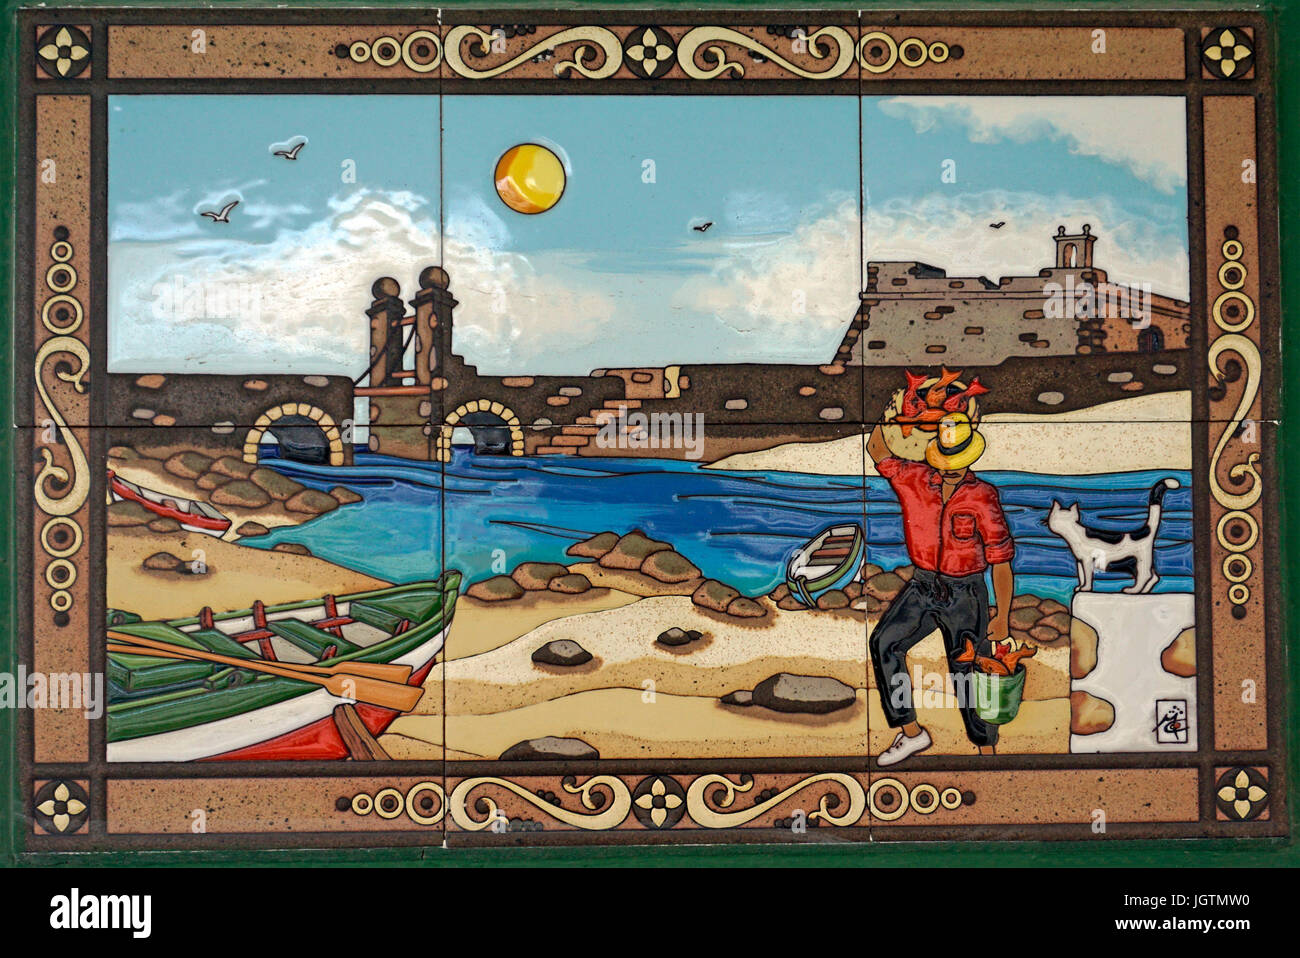 Tile picture shows a fisherman at Arrecife, Lanzarote island, Canary islands, Spain, Europe - Stock Image